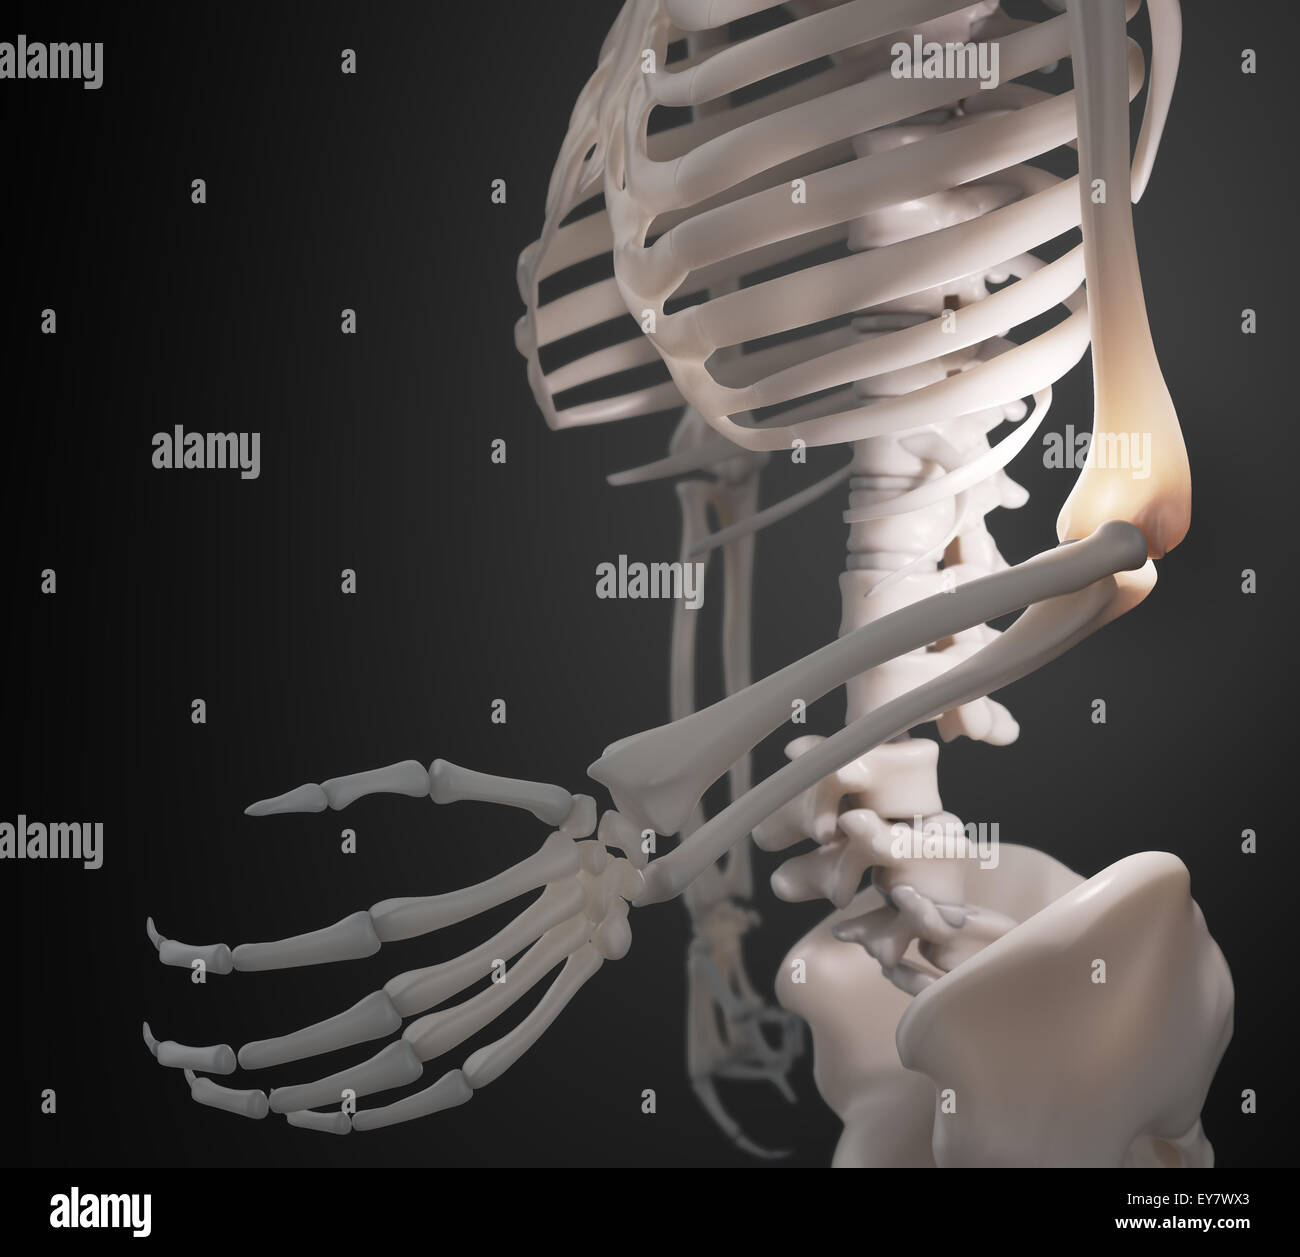 Human Skeleton Arm And Elbow Anatomy Stock Photo 85611179 Alamy